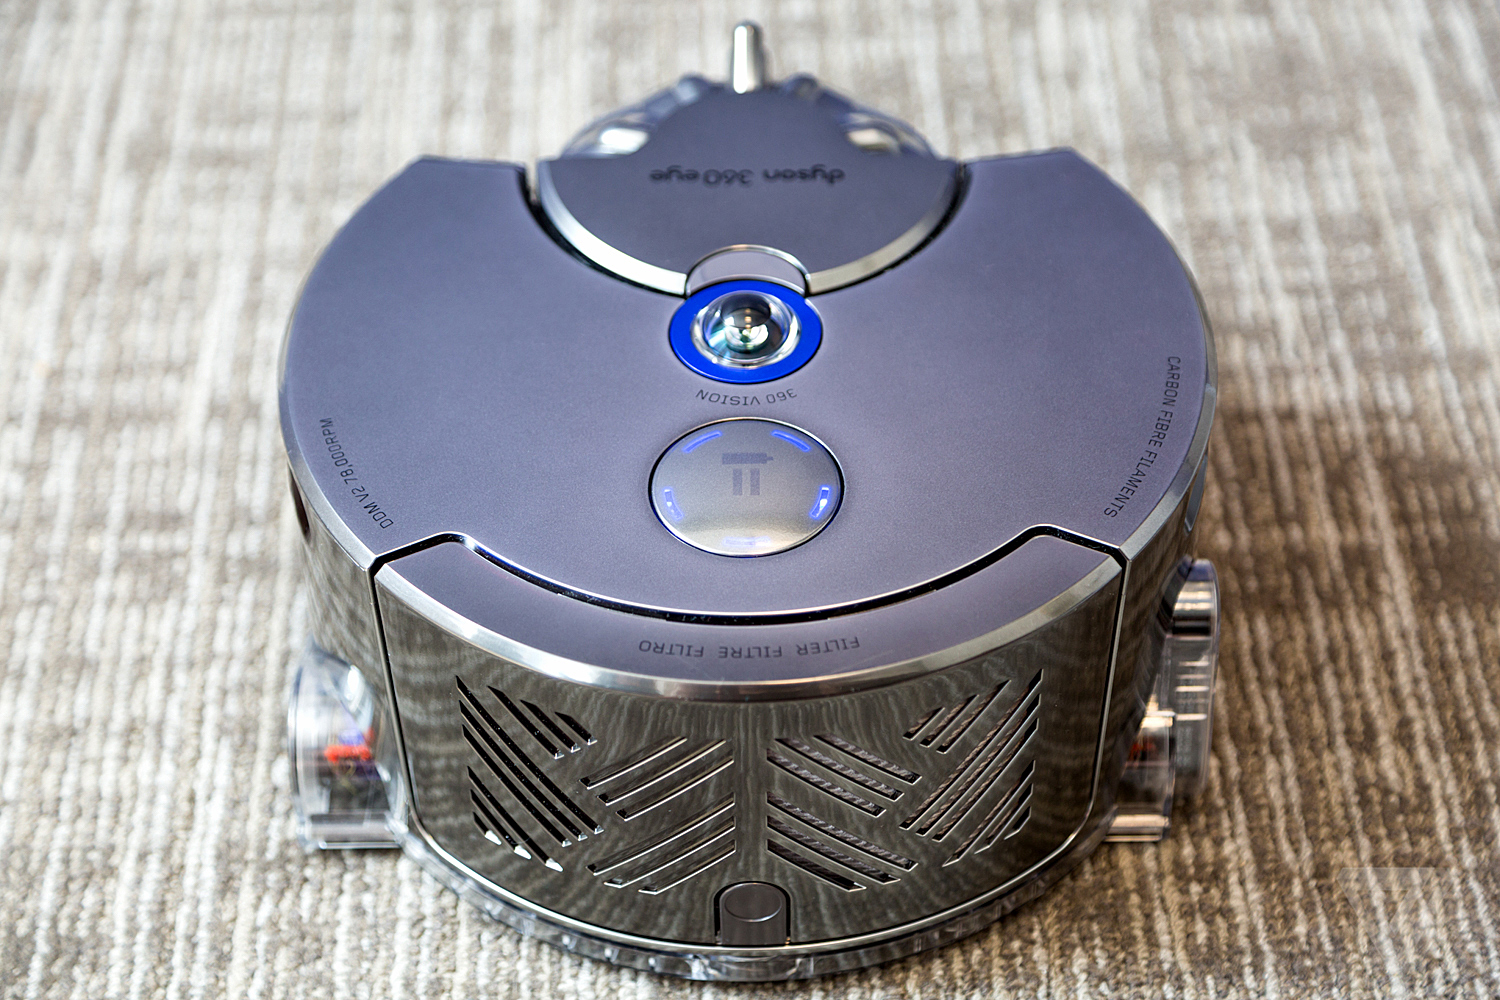 The Dyson 360 Eye Is The Best Robotic Vacuum Which Is Why